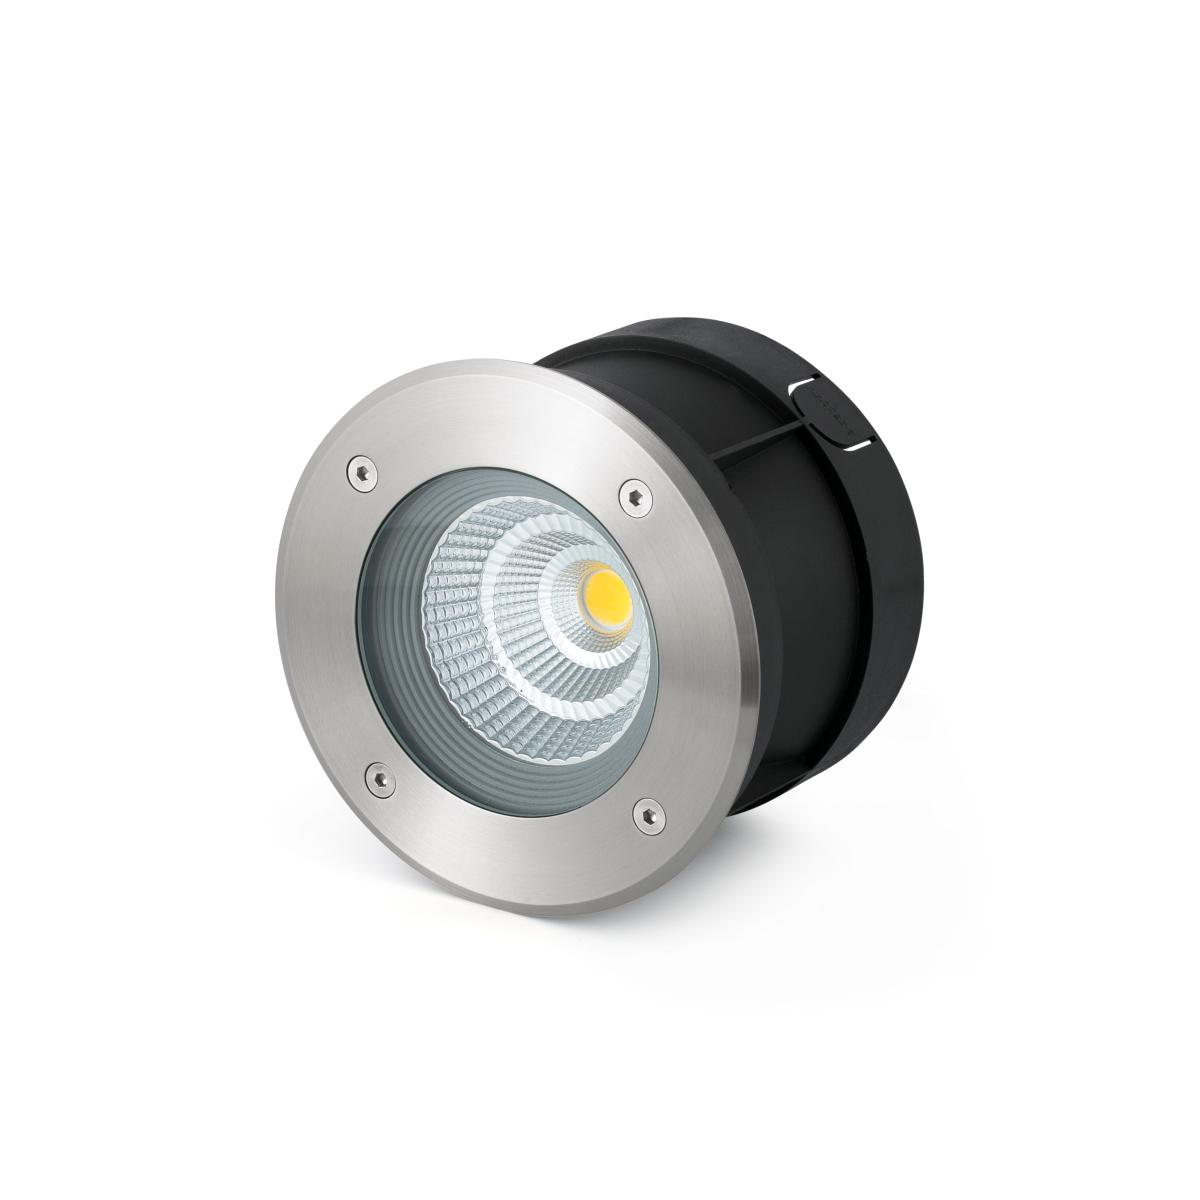 Spot encastrable exterieur led ip67 12w 60 inox 316 faro for Spot led interieur encastrable